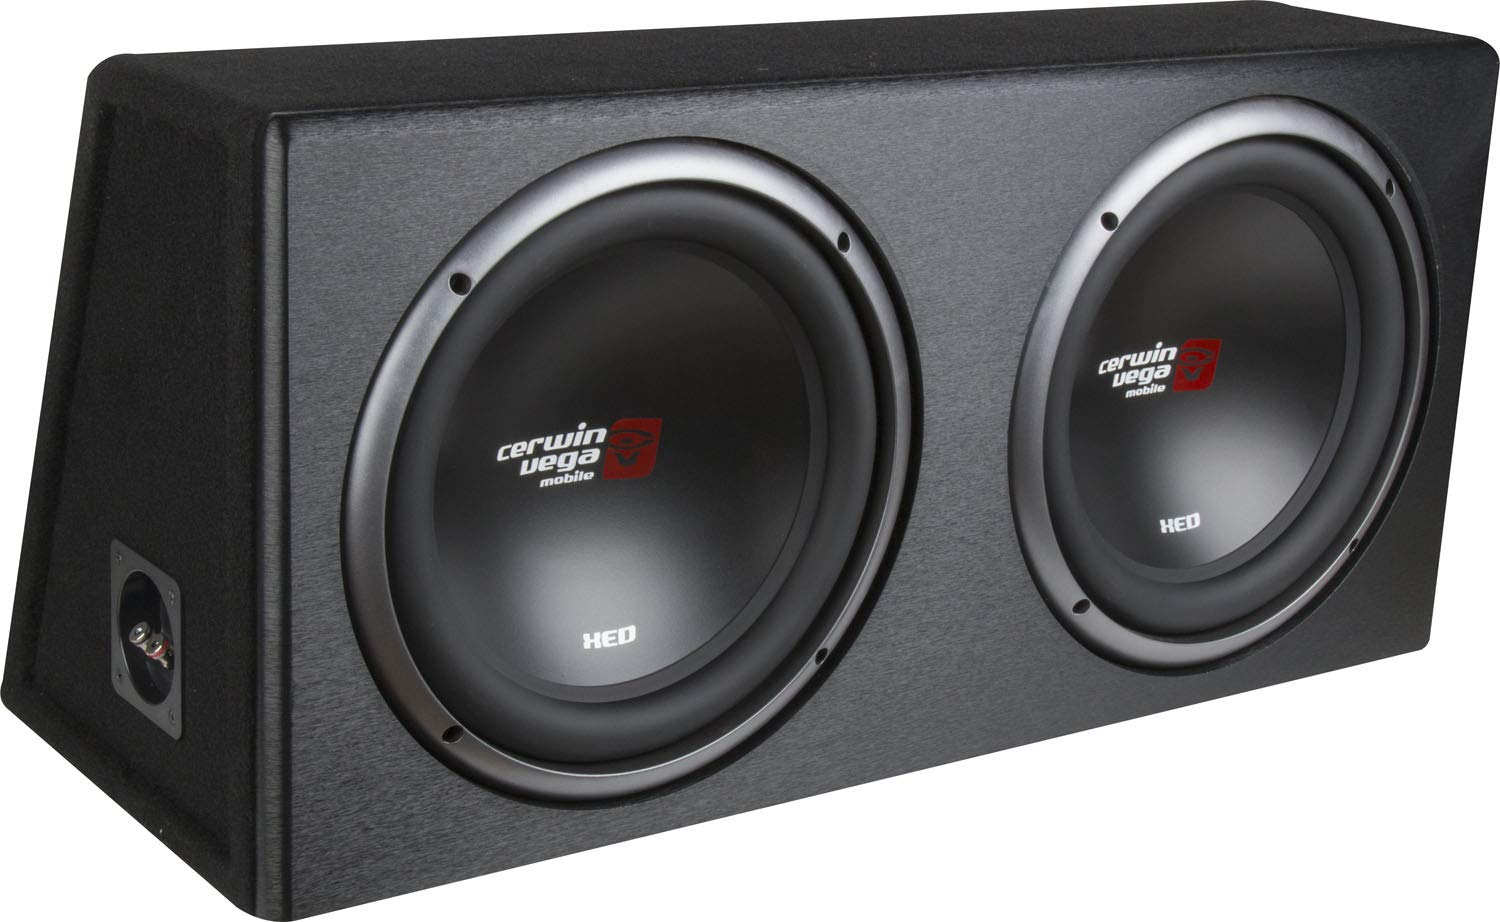 Cerwin-Vega Mobile CERXE10DV XED Series XE10DV Dual 10-Inch Subwoofers in Loaded Enclosure, Black